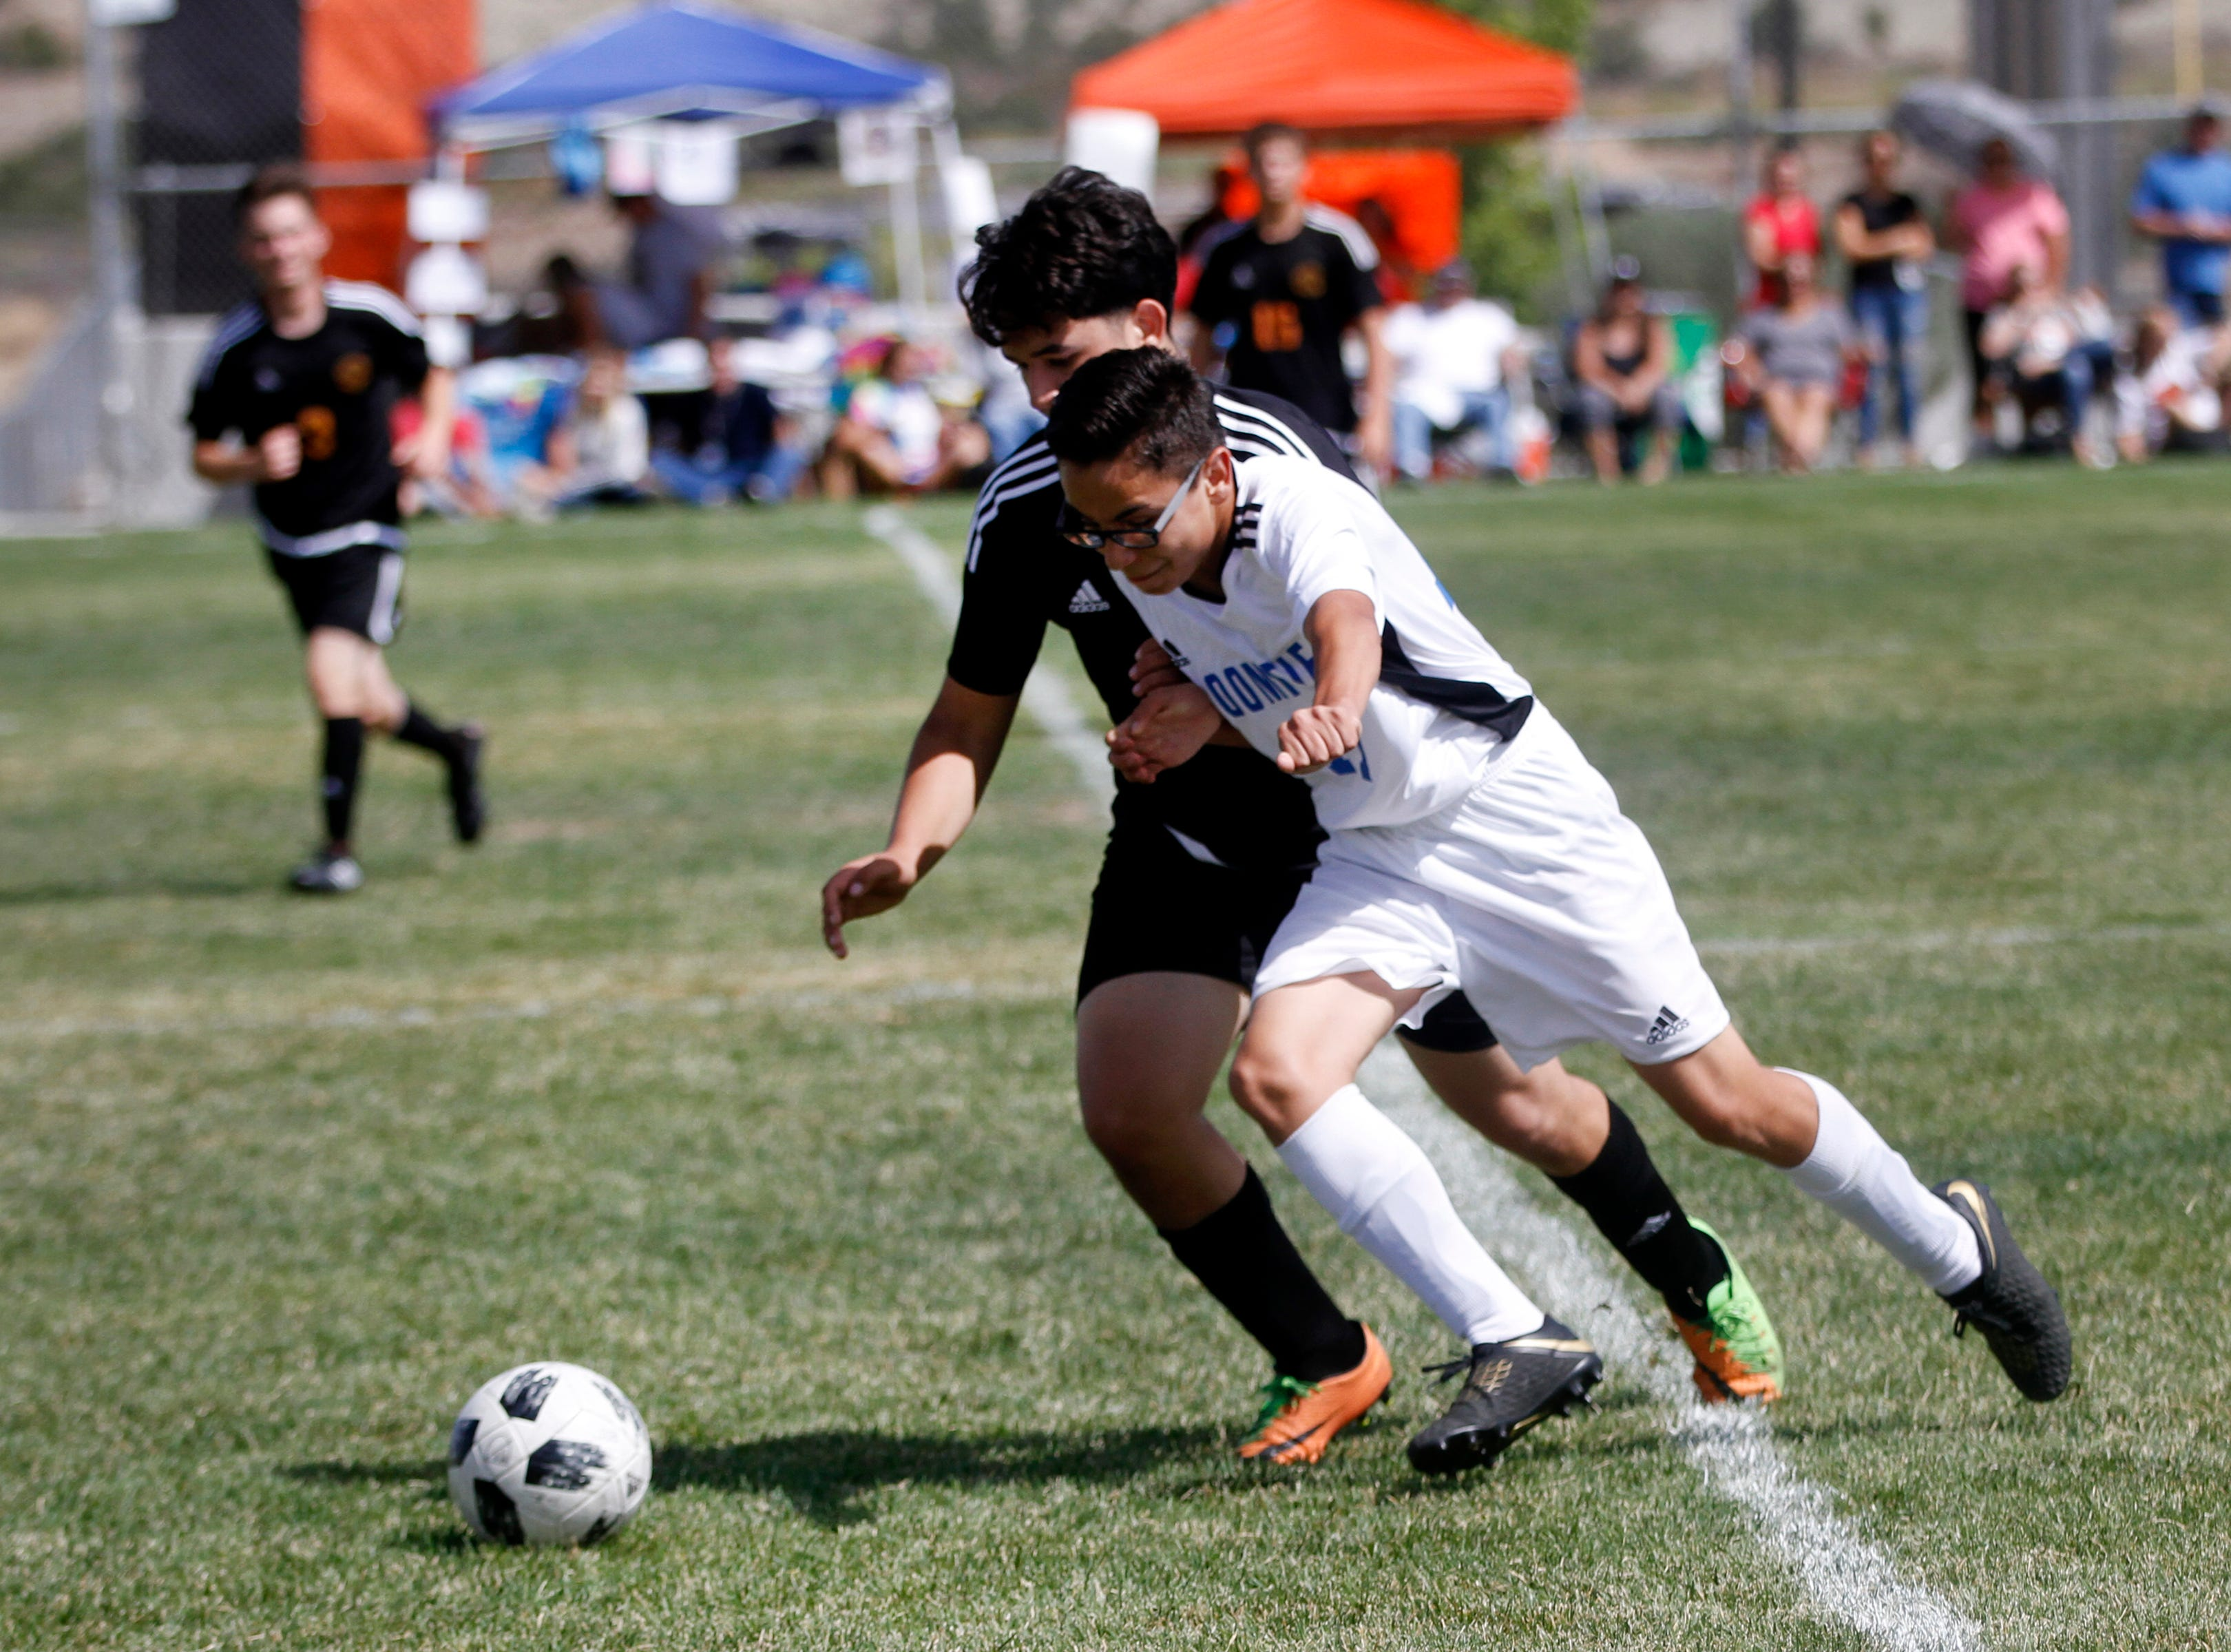 Bloomfield's Rubio Daniel and Aztec's Anthony Aviles battle for the ball, Friday, Aug. 24, 2018 at the Aztec Tiger Soccer Complex.